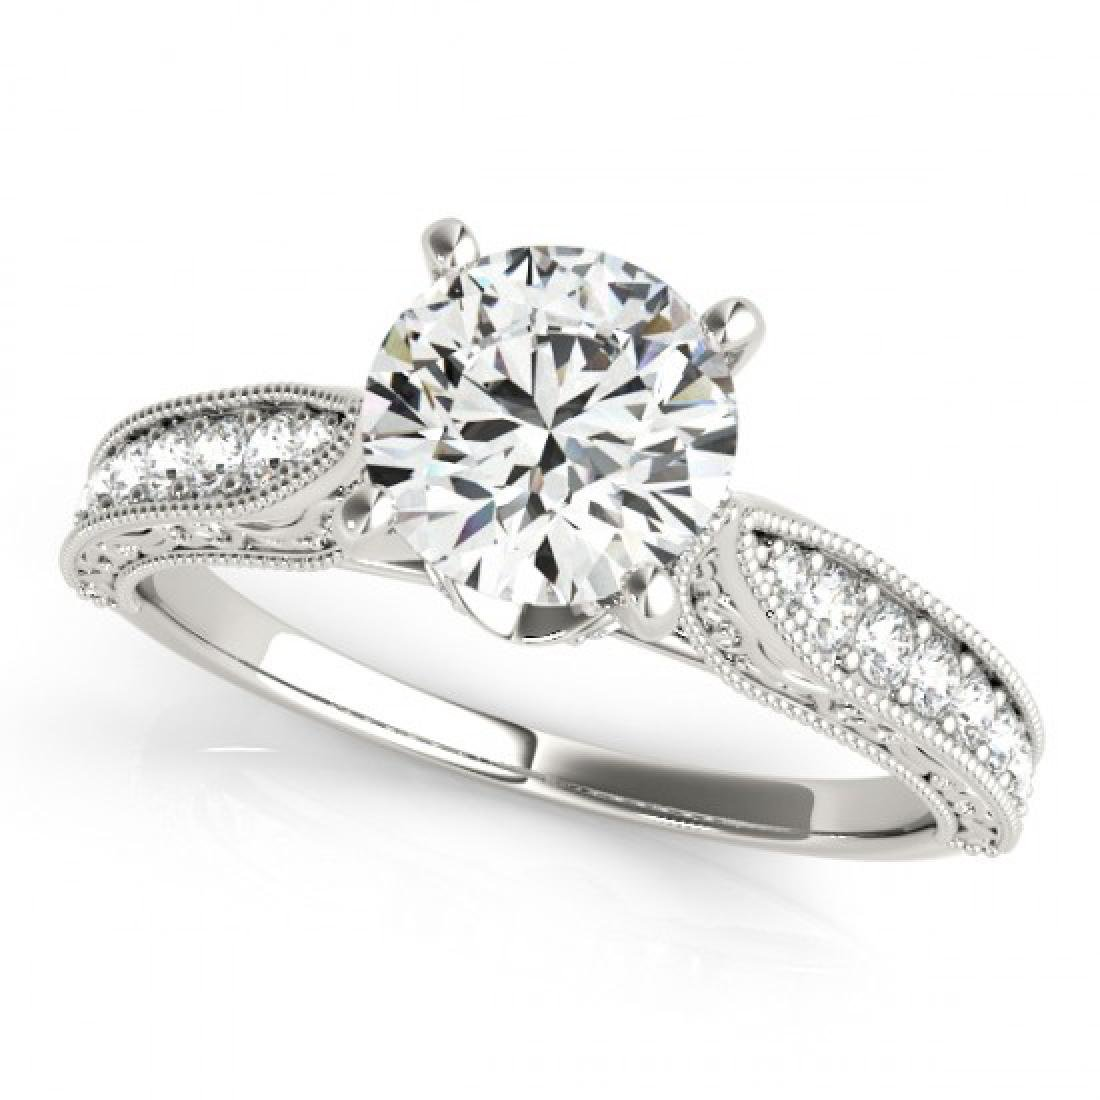 0.98 CTW Certified VS/SI Diamond Solitaire Antique Ring